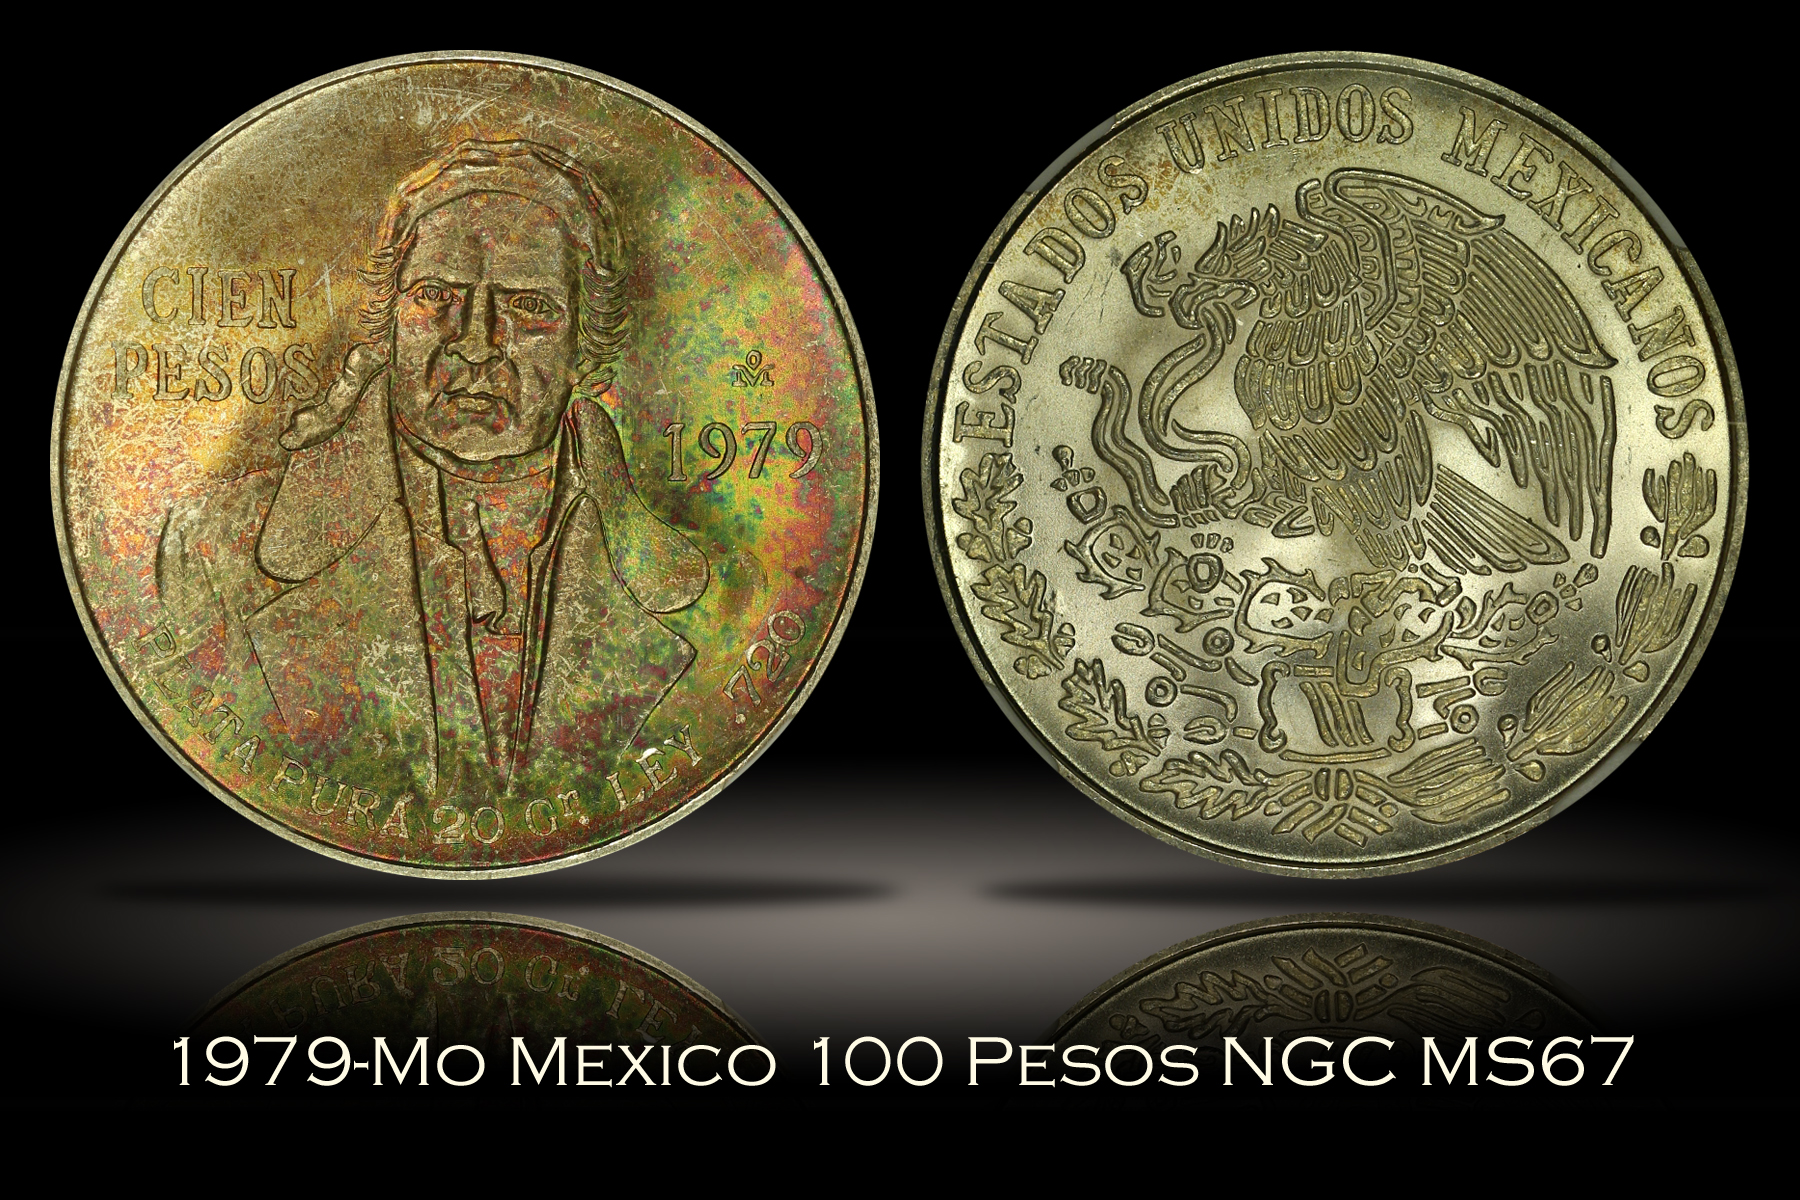 1979-Mo Mexico 100 Pesos NGC MS67